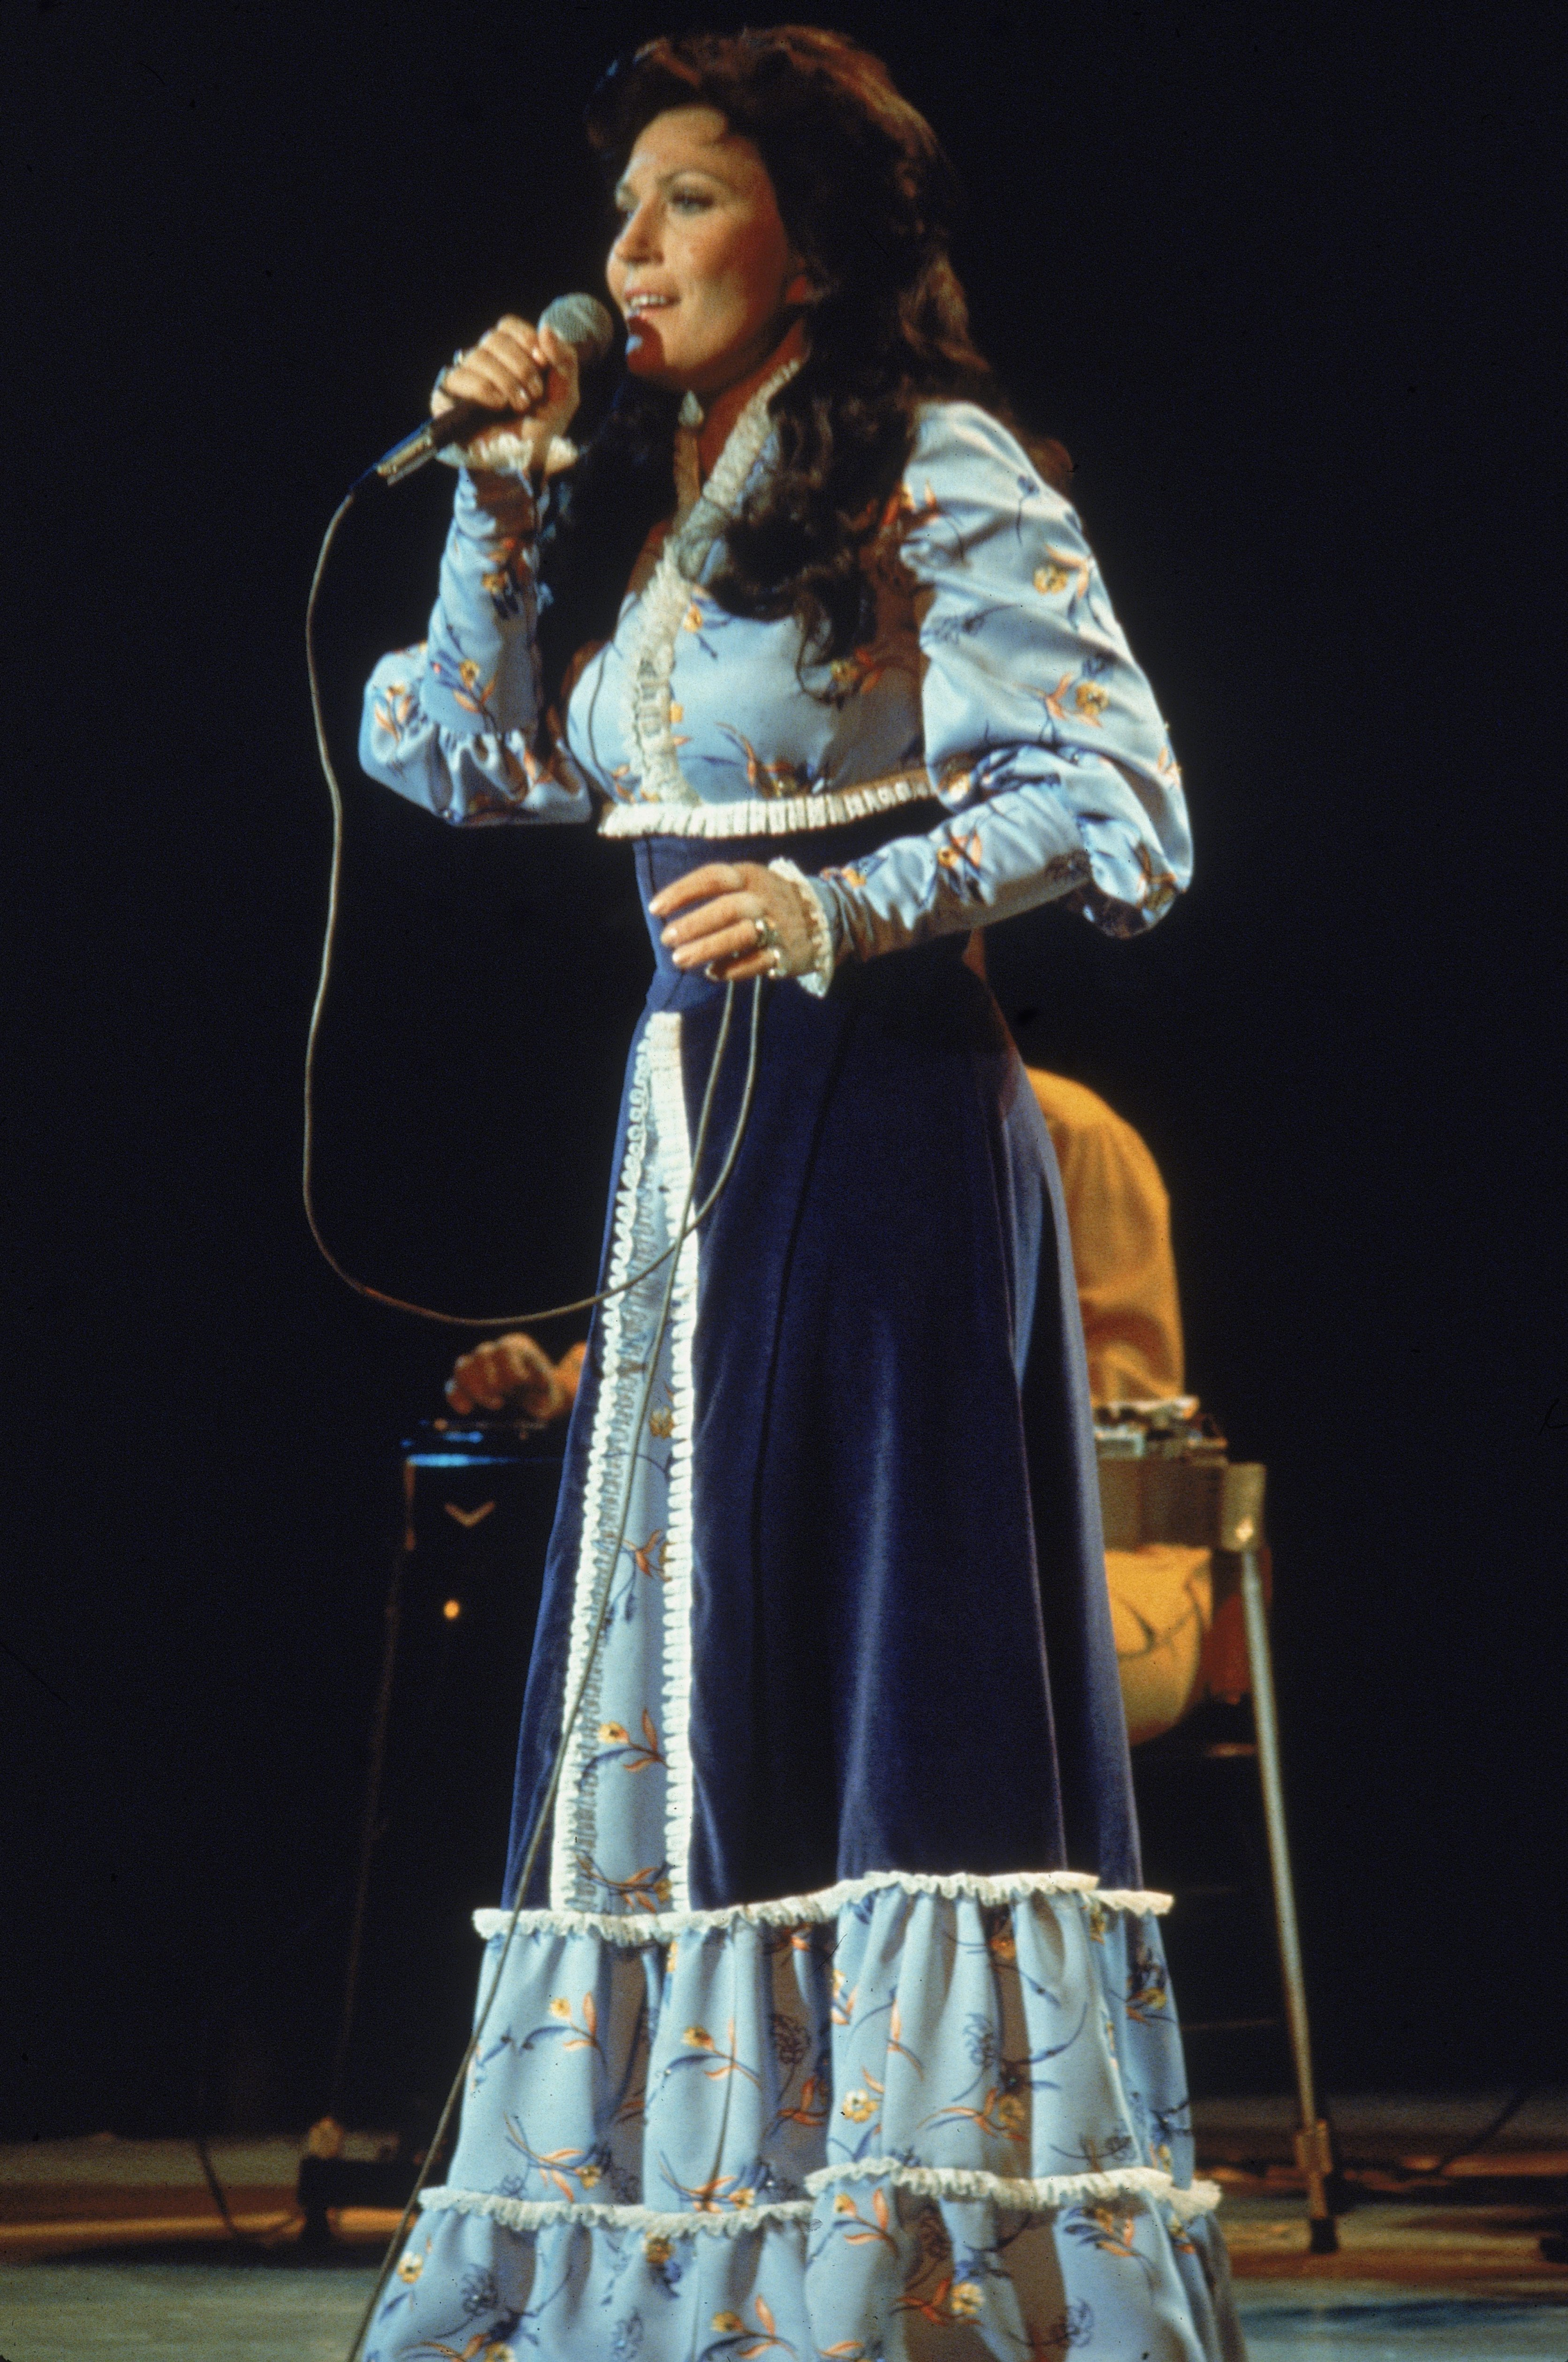 Loretta Lynn performs on stage, wearing a long dress, circa 1980. | Source: Getty Images.